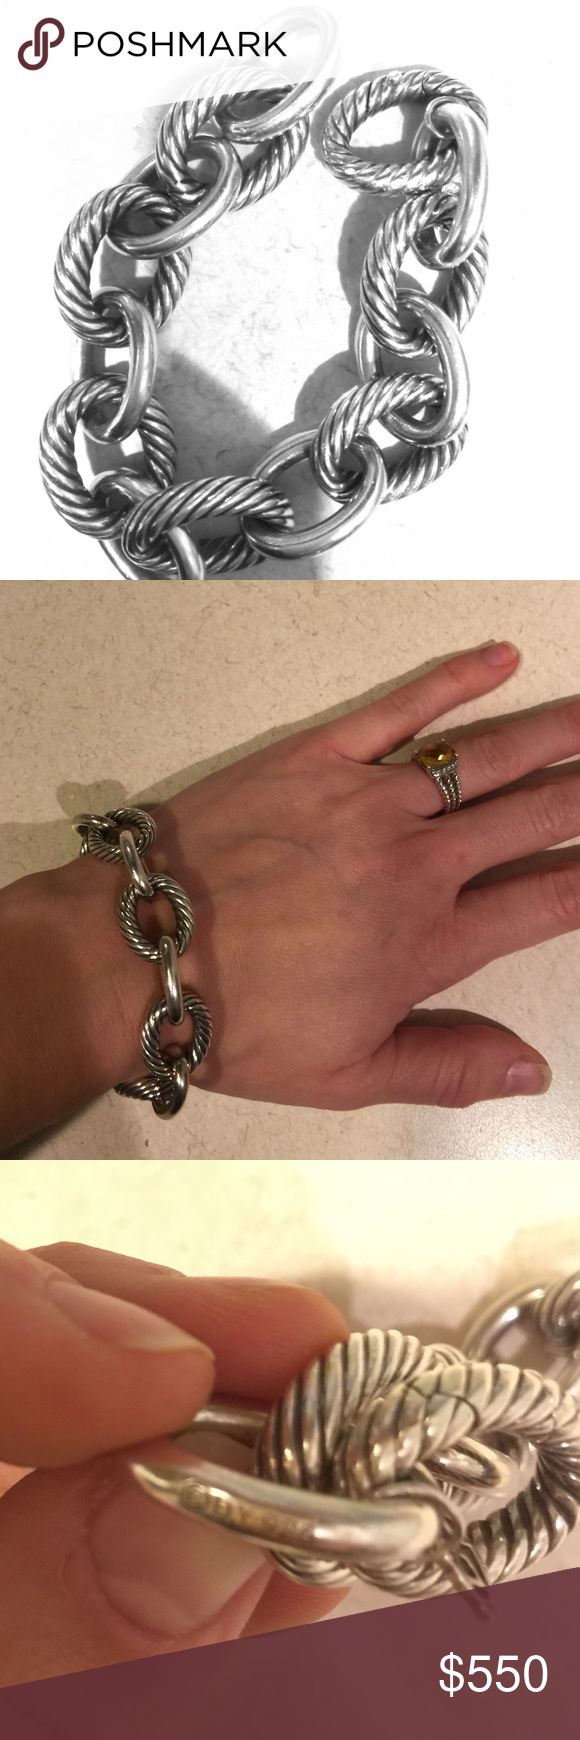 29c515d87 David Yurman Extra Large Oval Link Bracelet Authentic. Preowned. Lightly  worn. Excellent condition. It will come with original case and  certification of ...